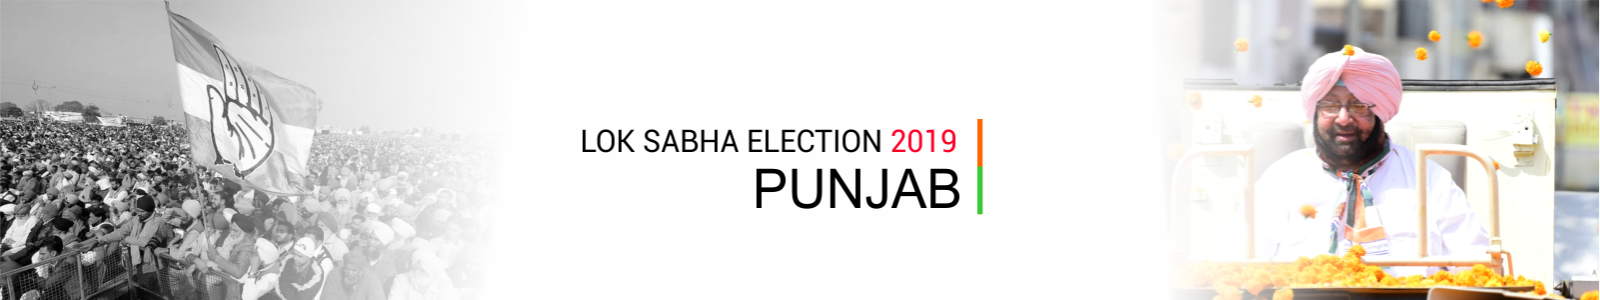 Captain Amrinder Singh Lok Sabha Election 2019 Punjab| Election Campaign Management Company India | Design Boxed Creatives